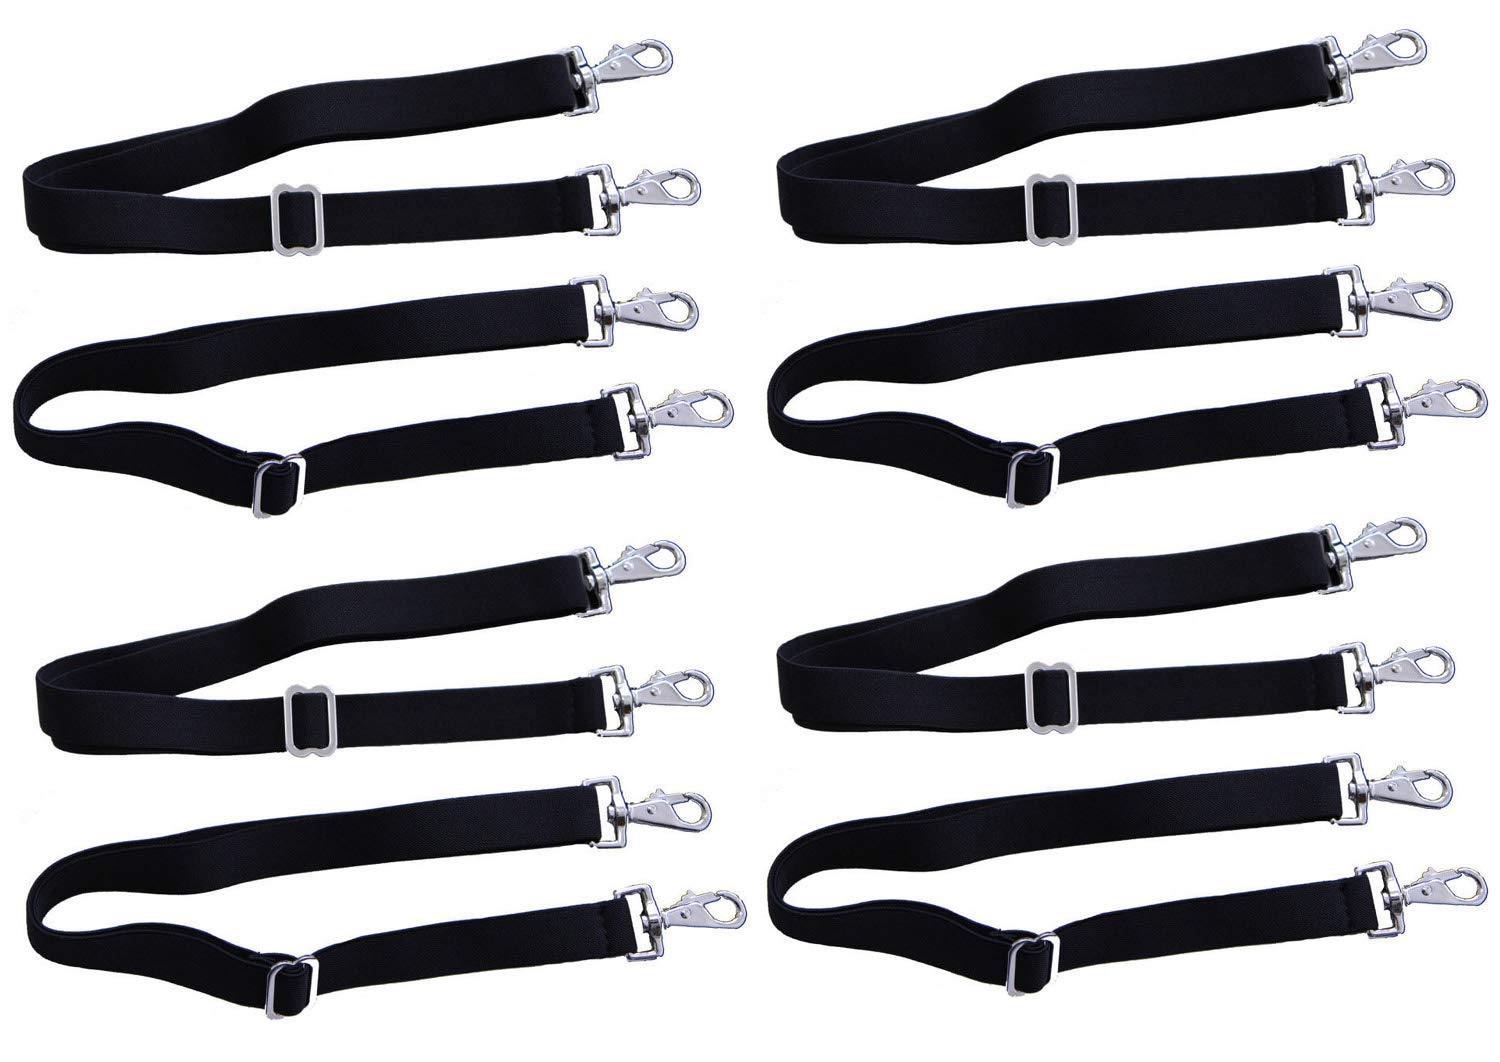 AJ Tack Wholesale Inc. Horse Blanket Sheet Replacement Elastic Leg Straps 4-Pairs Double Snaps Adjustable Length by AJ Tack Wholesale Inc.